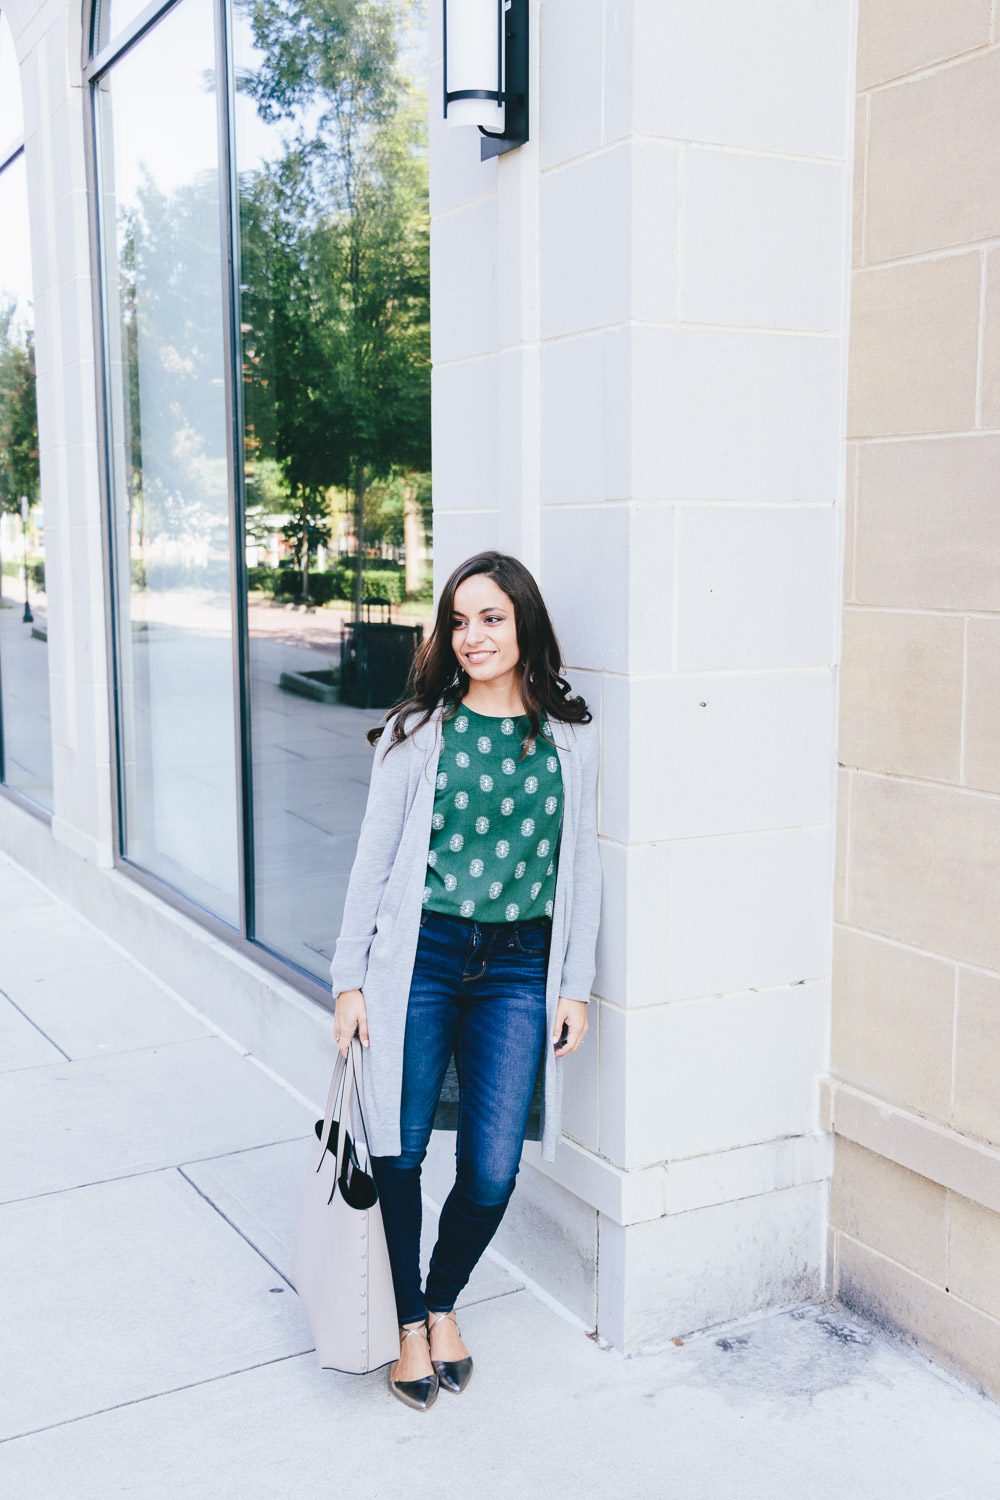 Brooke of Pumps & Push-Ups - Petite Fashion Blogger